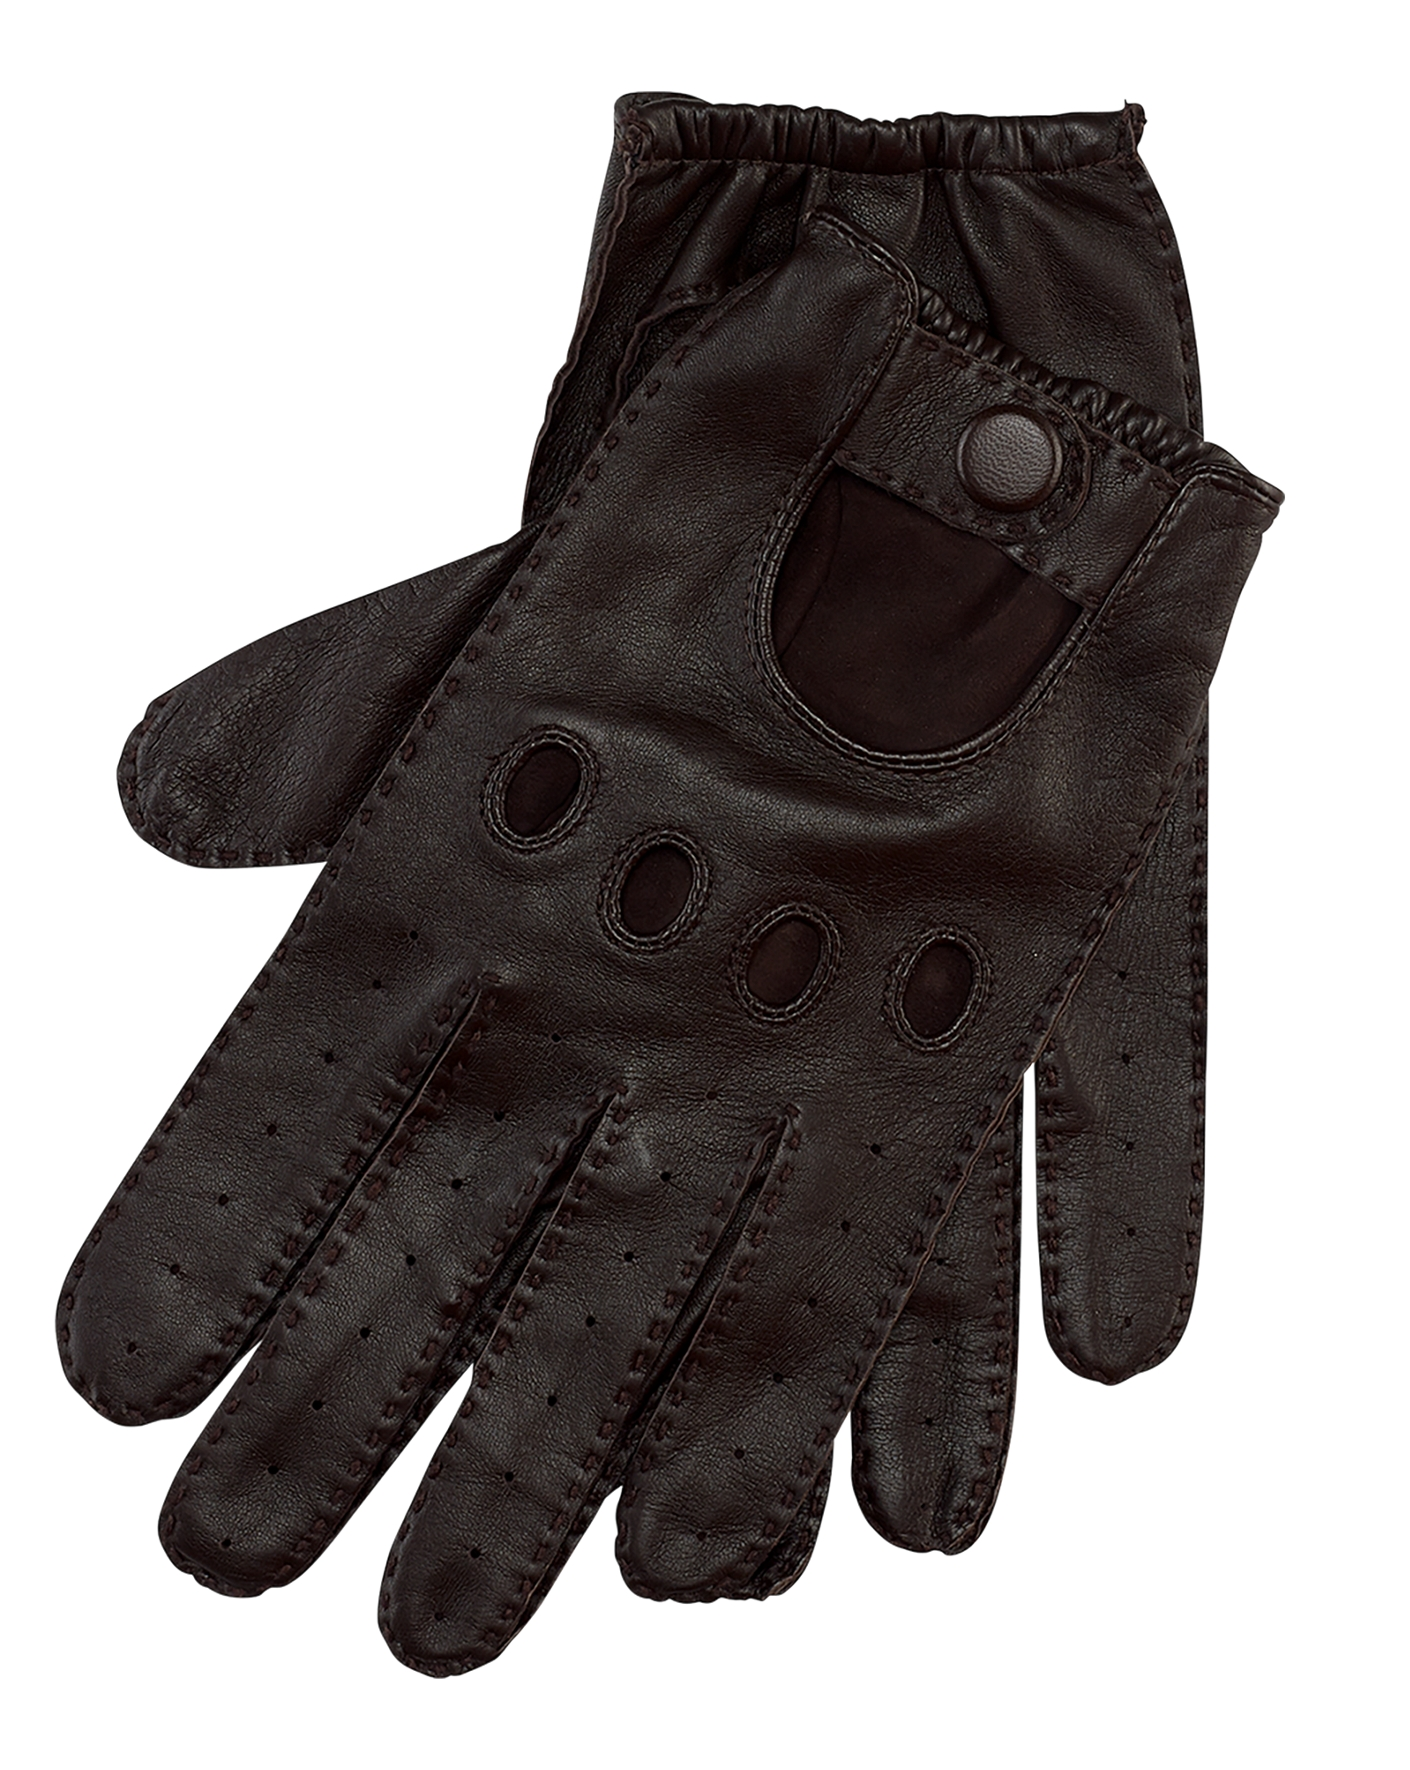 Mens leather driving gloves australia - World Of Rl